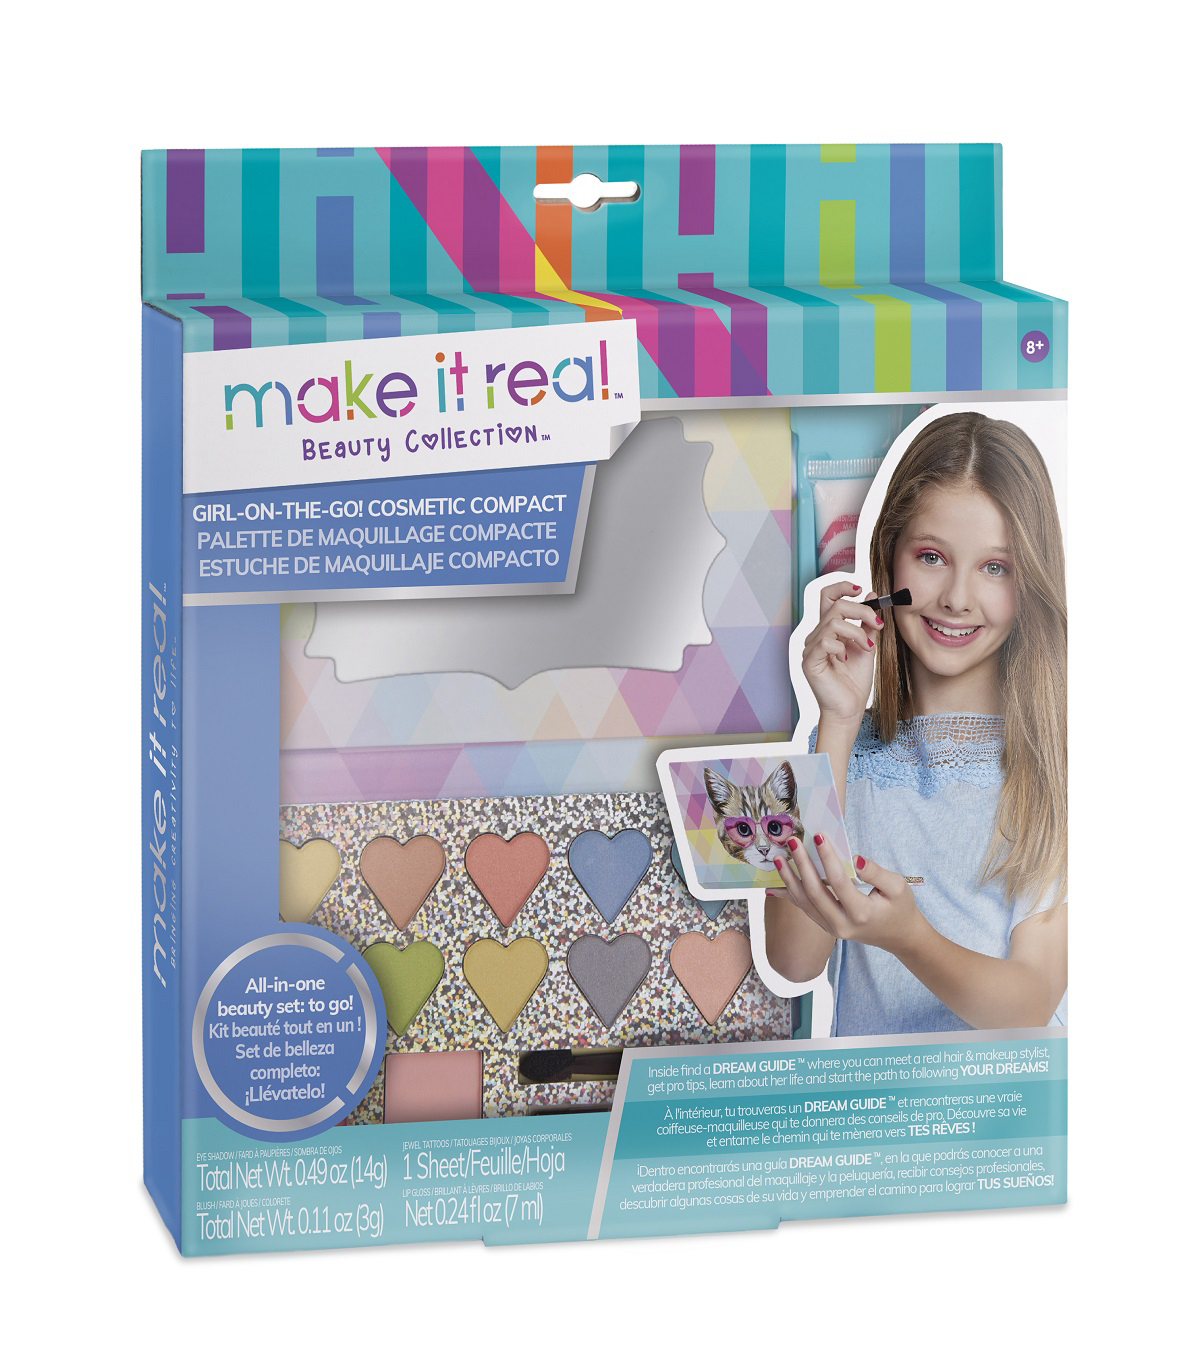 Make It Real Beauty Collection Girl-On-The-Go! Cosmetic Compact